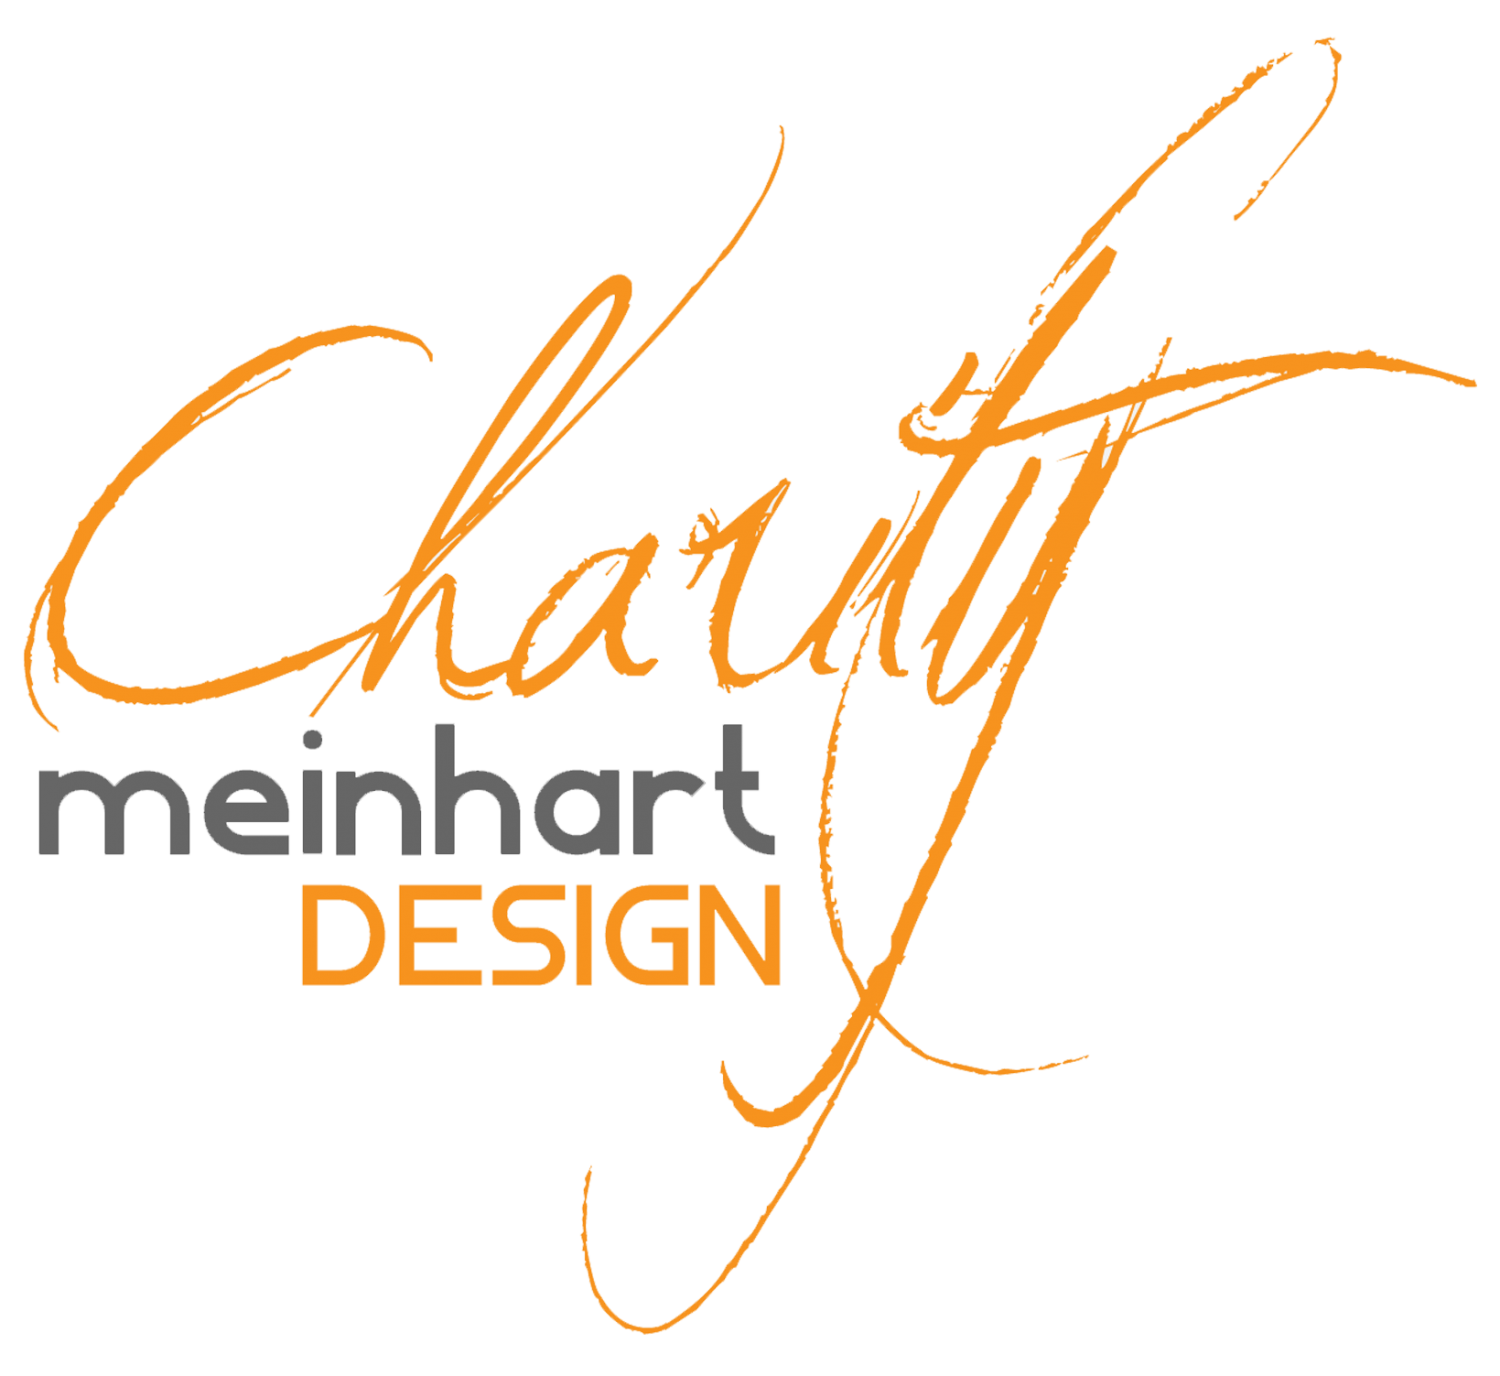 Charity Meinhart Design